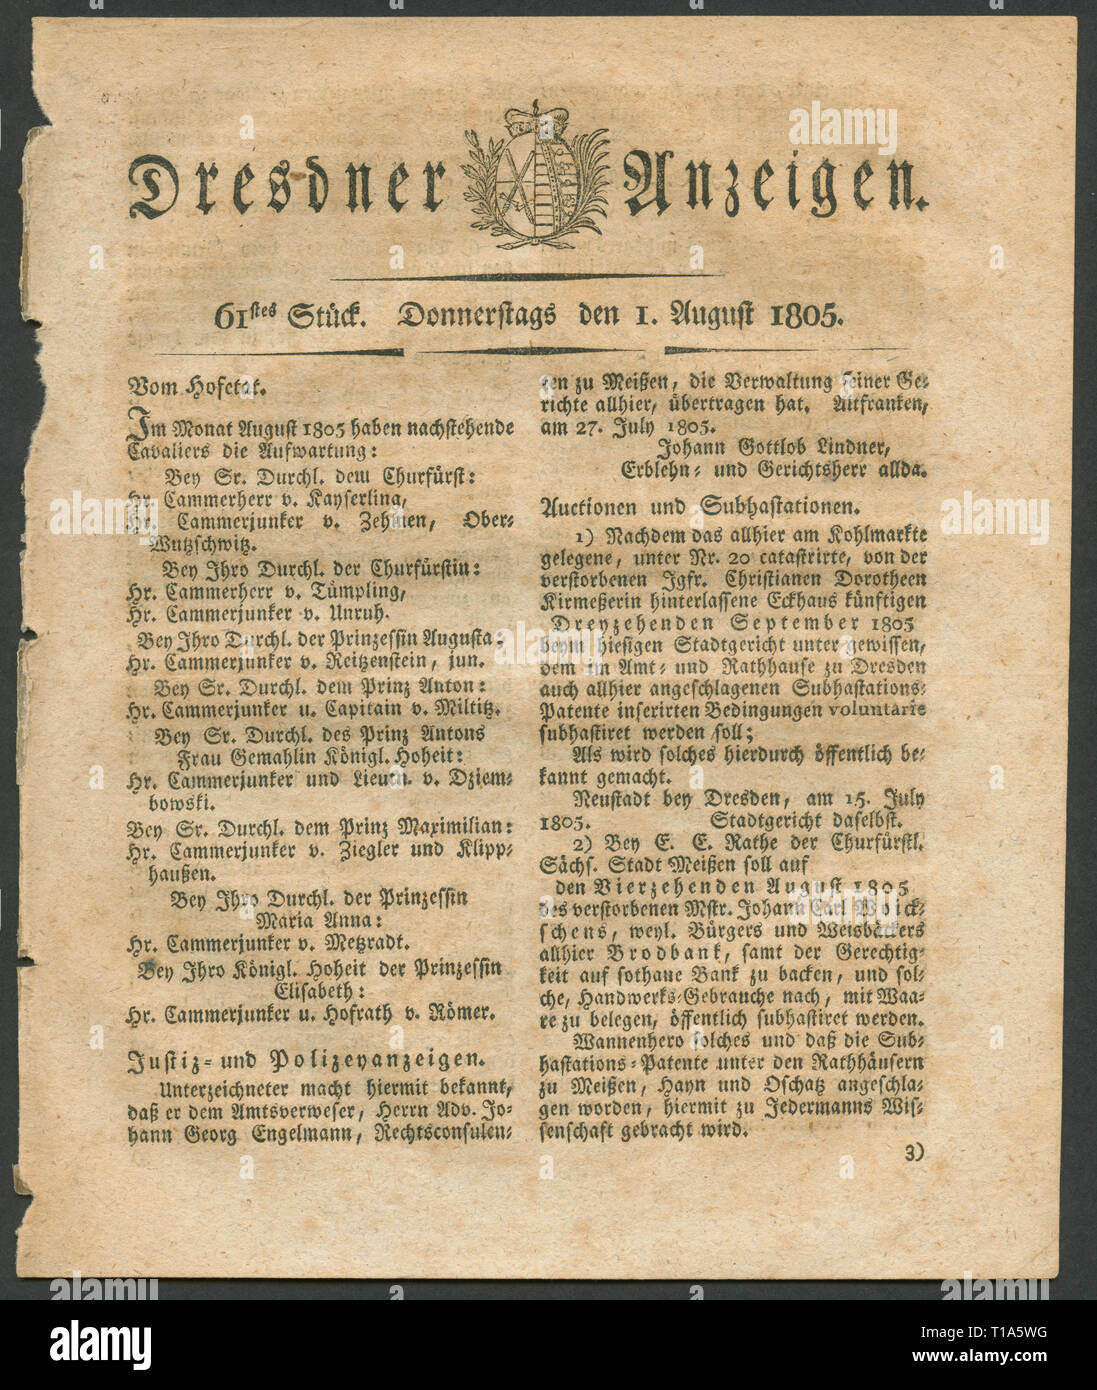 Alemania, en el Estado federado de Sajonia, Dresden, periódico histórico ' Dresdner Anzeigen', publicado el 1.8.1805., Additional-Rights-Clearance-Info-Not-Available Imagen De Stock